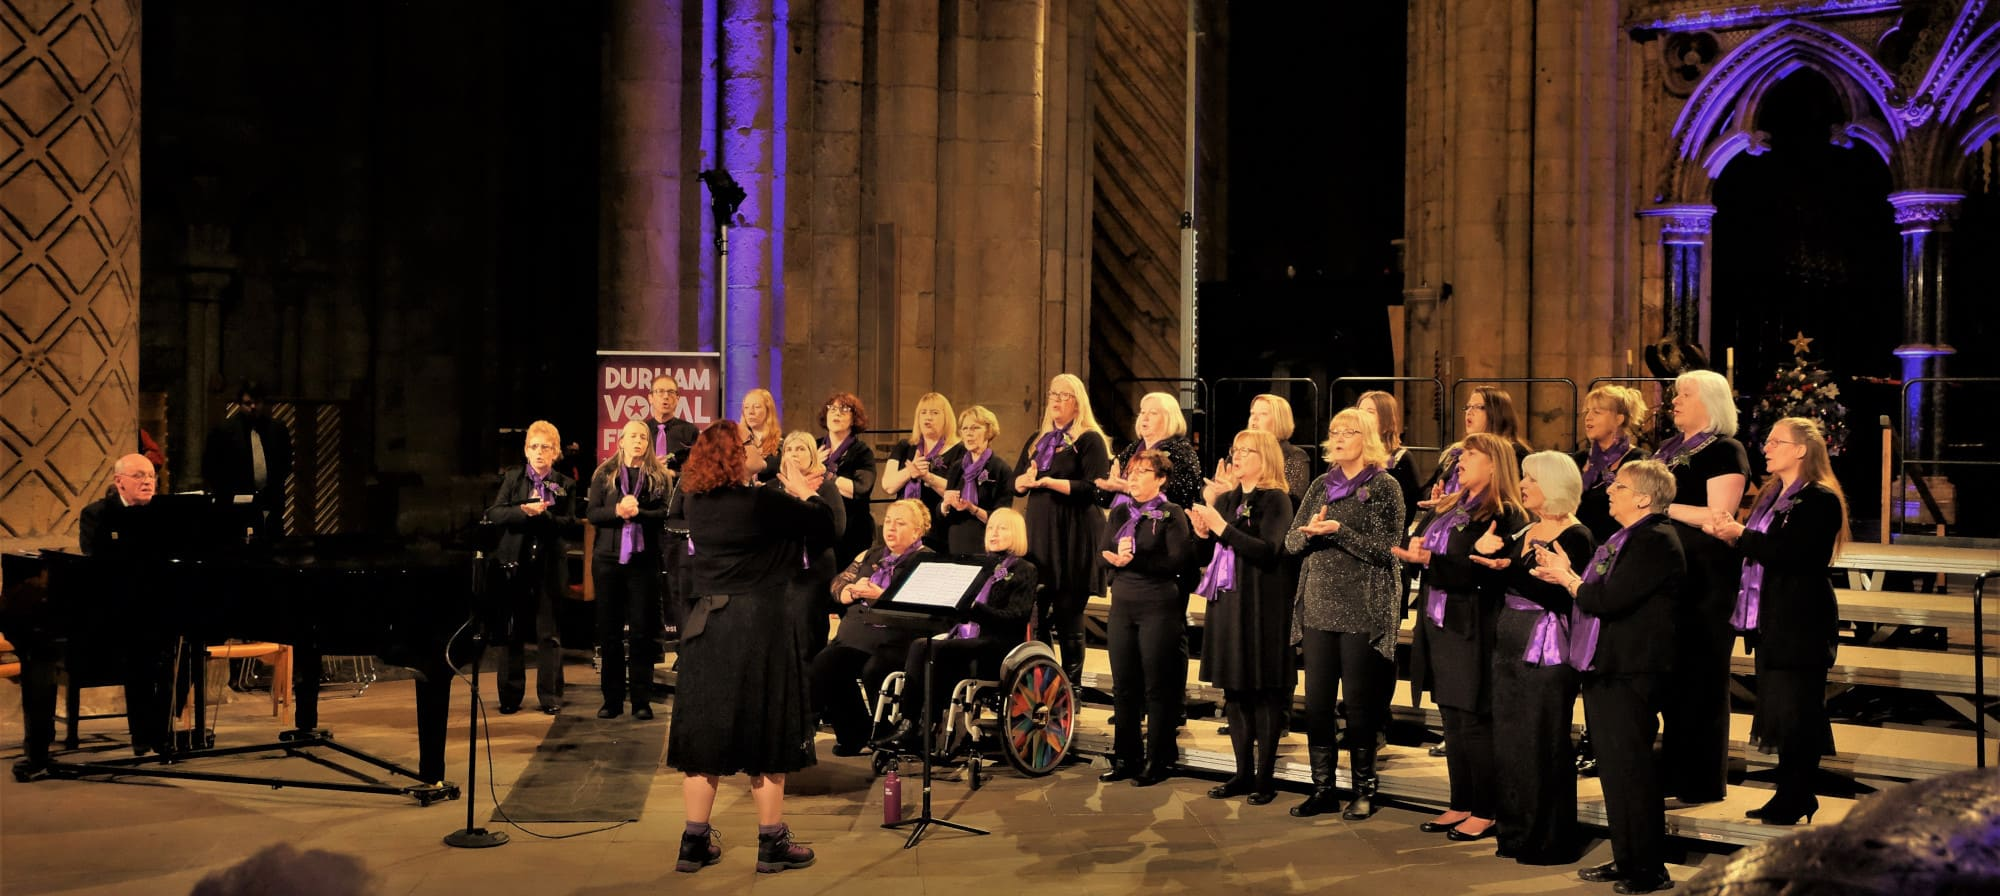 Unity Choir, led by The Singing Elf at Durham Vocal Festival at Durham Cathedral, Feb 2019